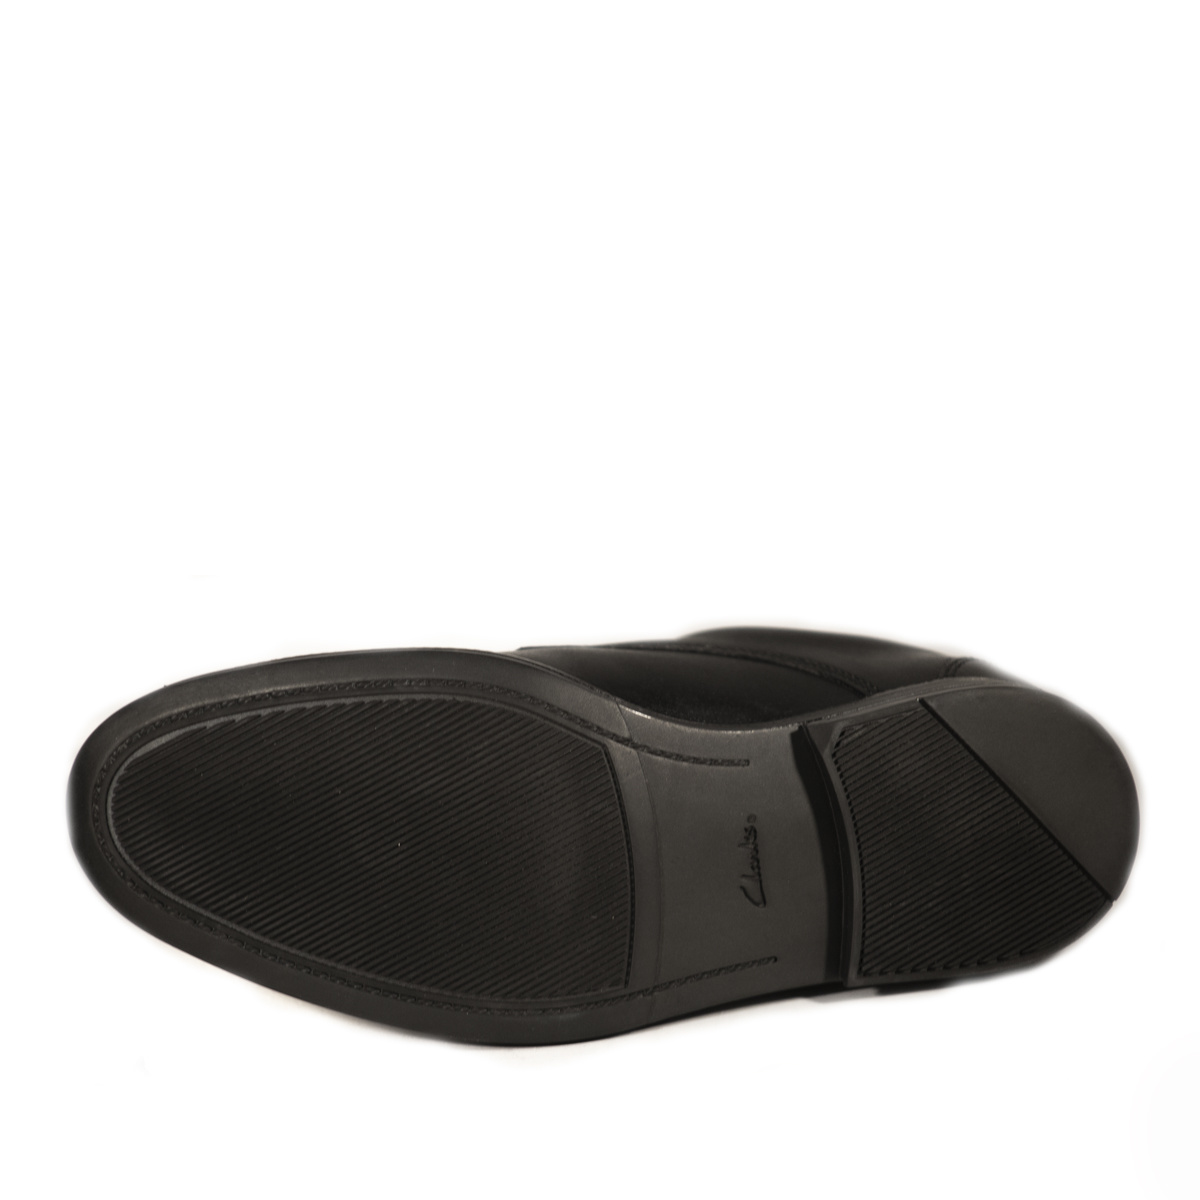 Clarks Rufus Edge Junior